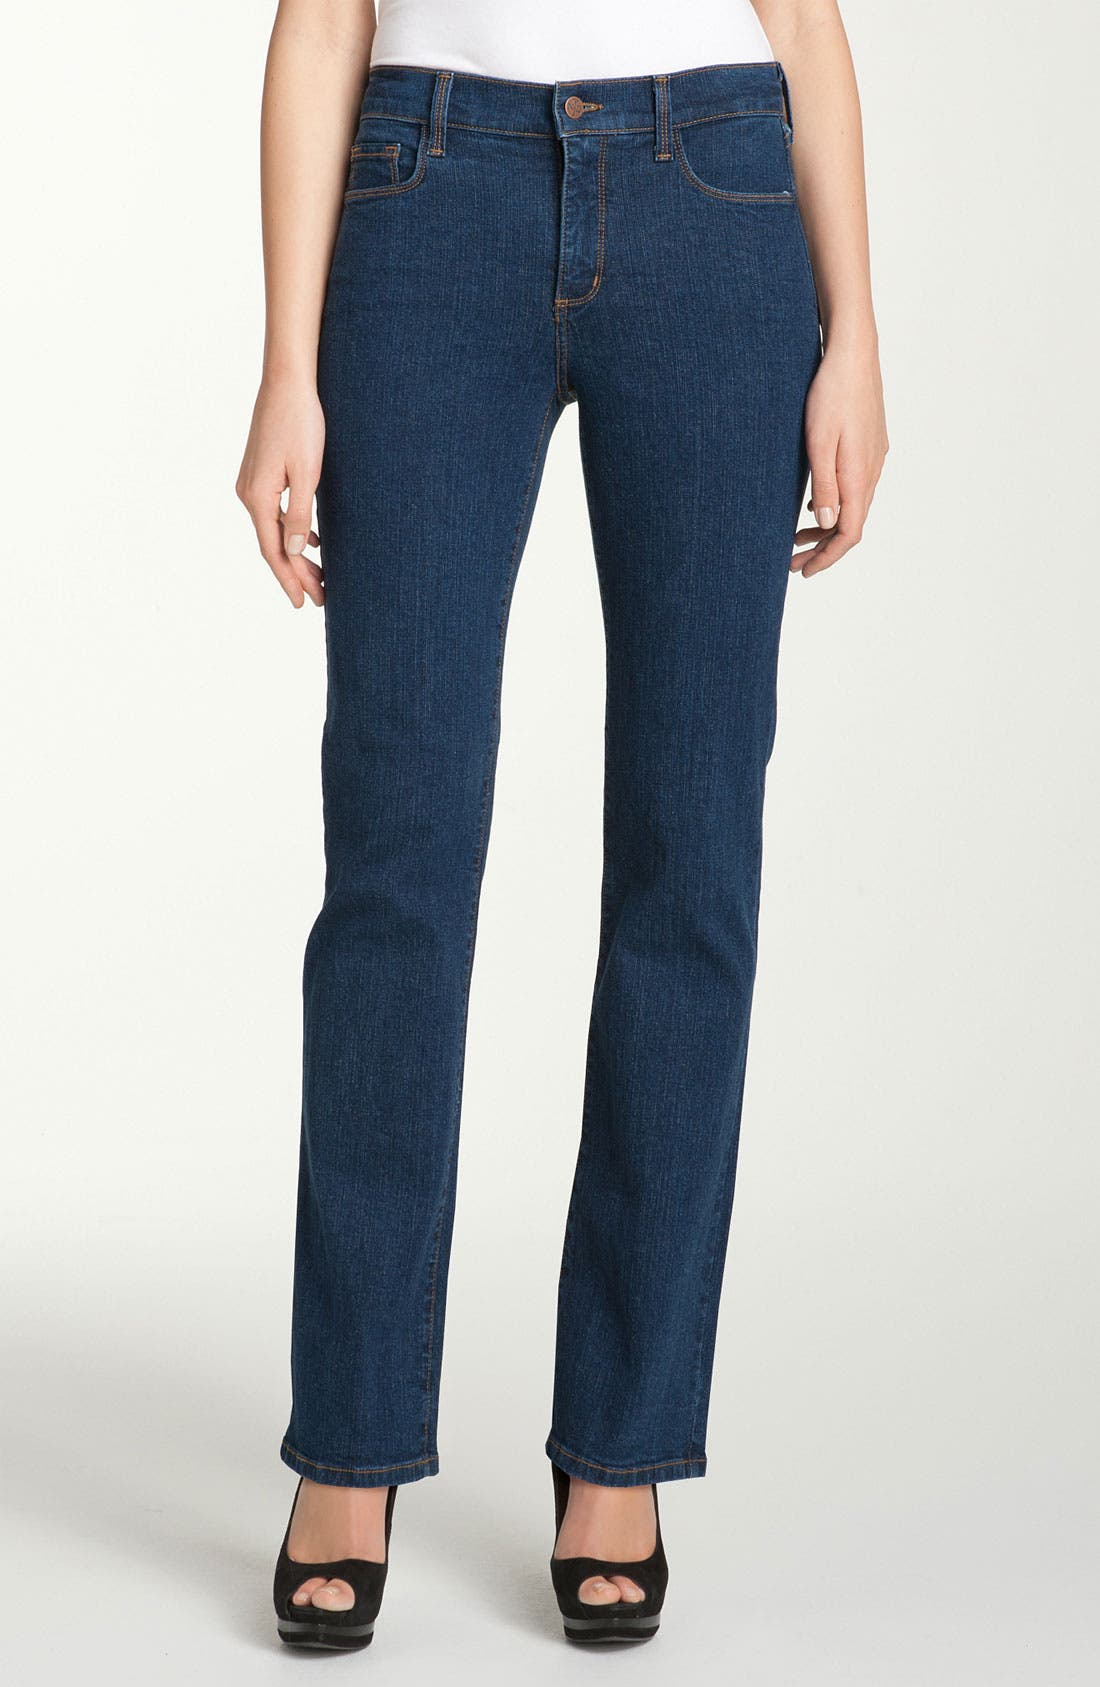 Main Image - NYDJ 'Marilyn' Stretch Straight Leg Jeans (Denim) (Regular & Petite)